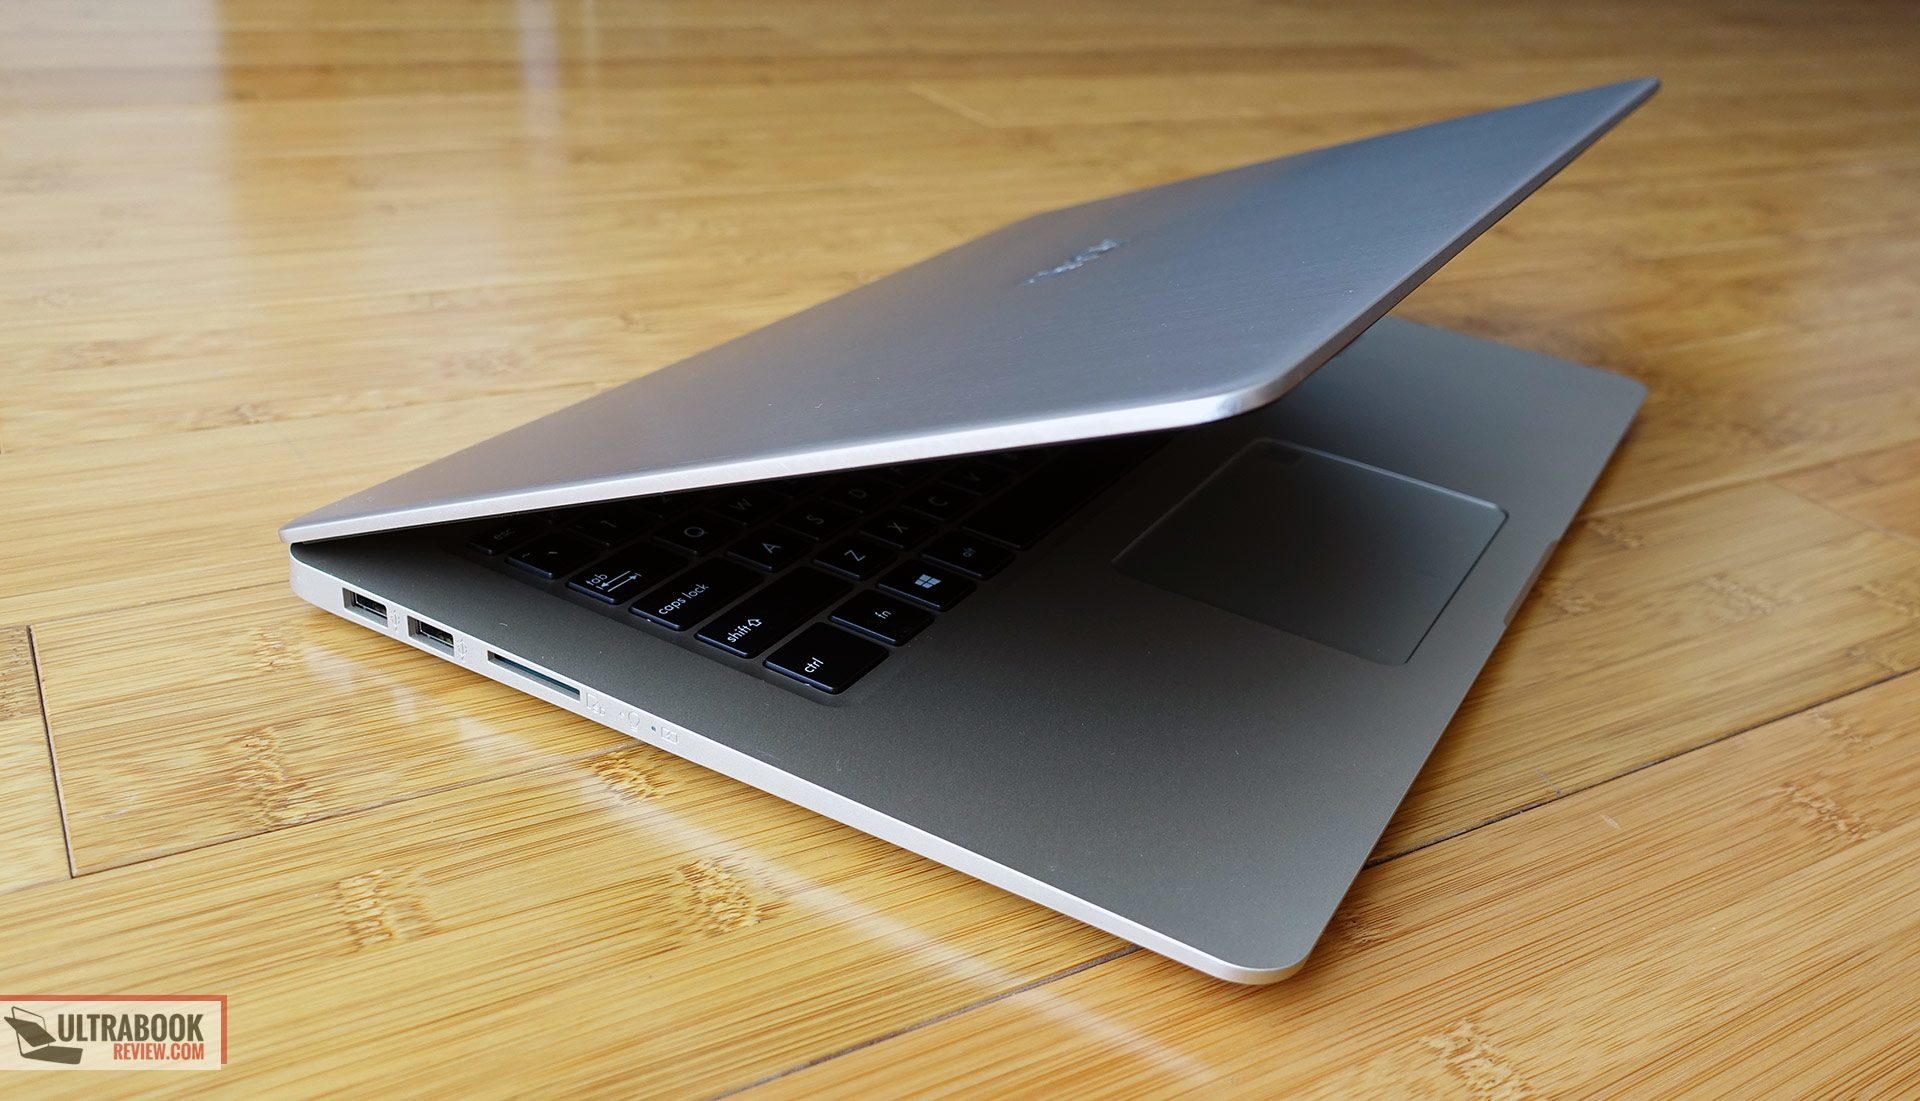 Asus VivoBook S15 S510 / F510 review - thin and light full